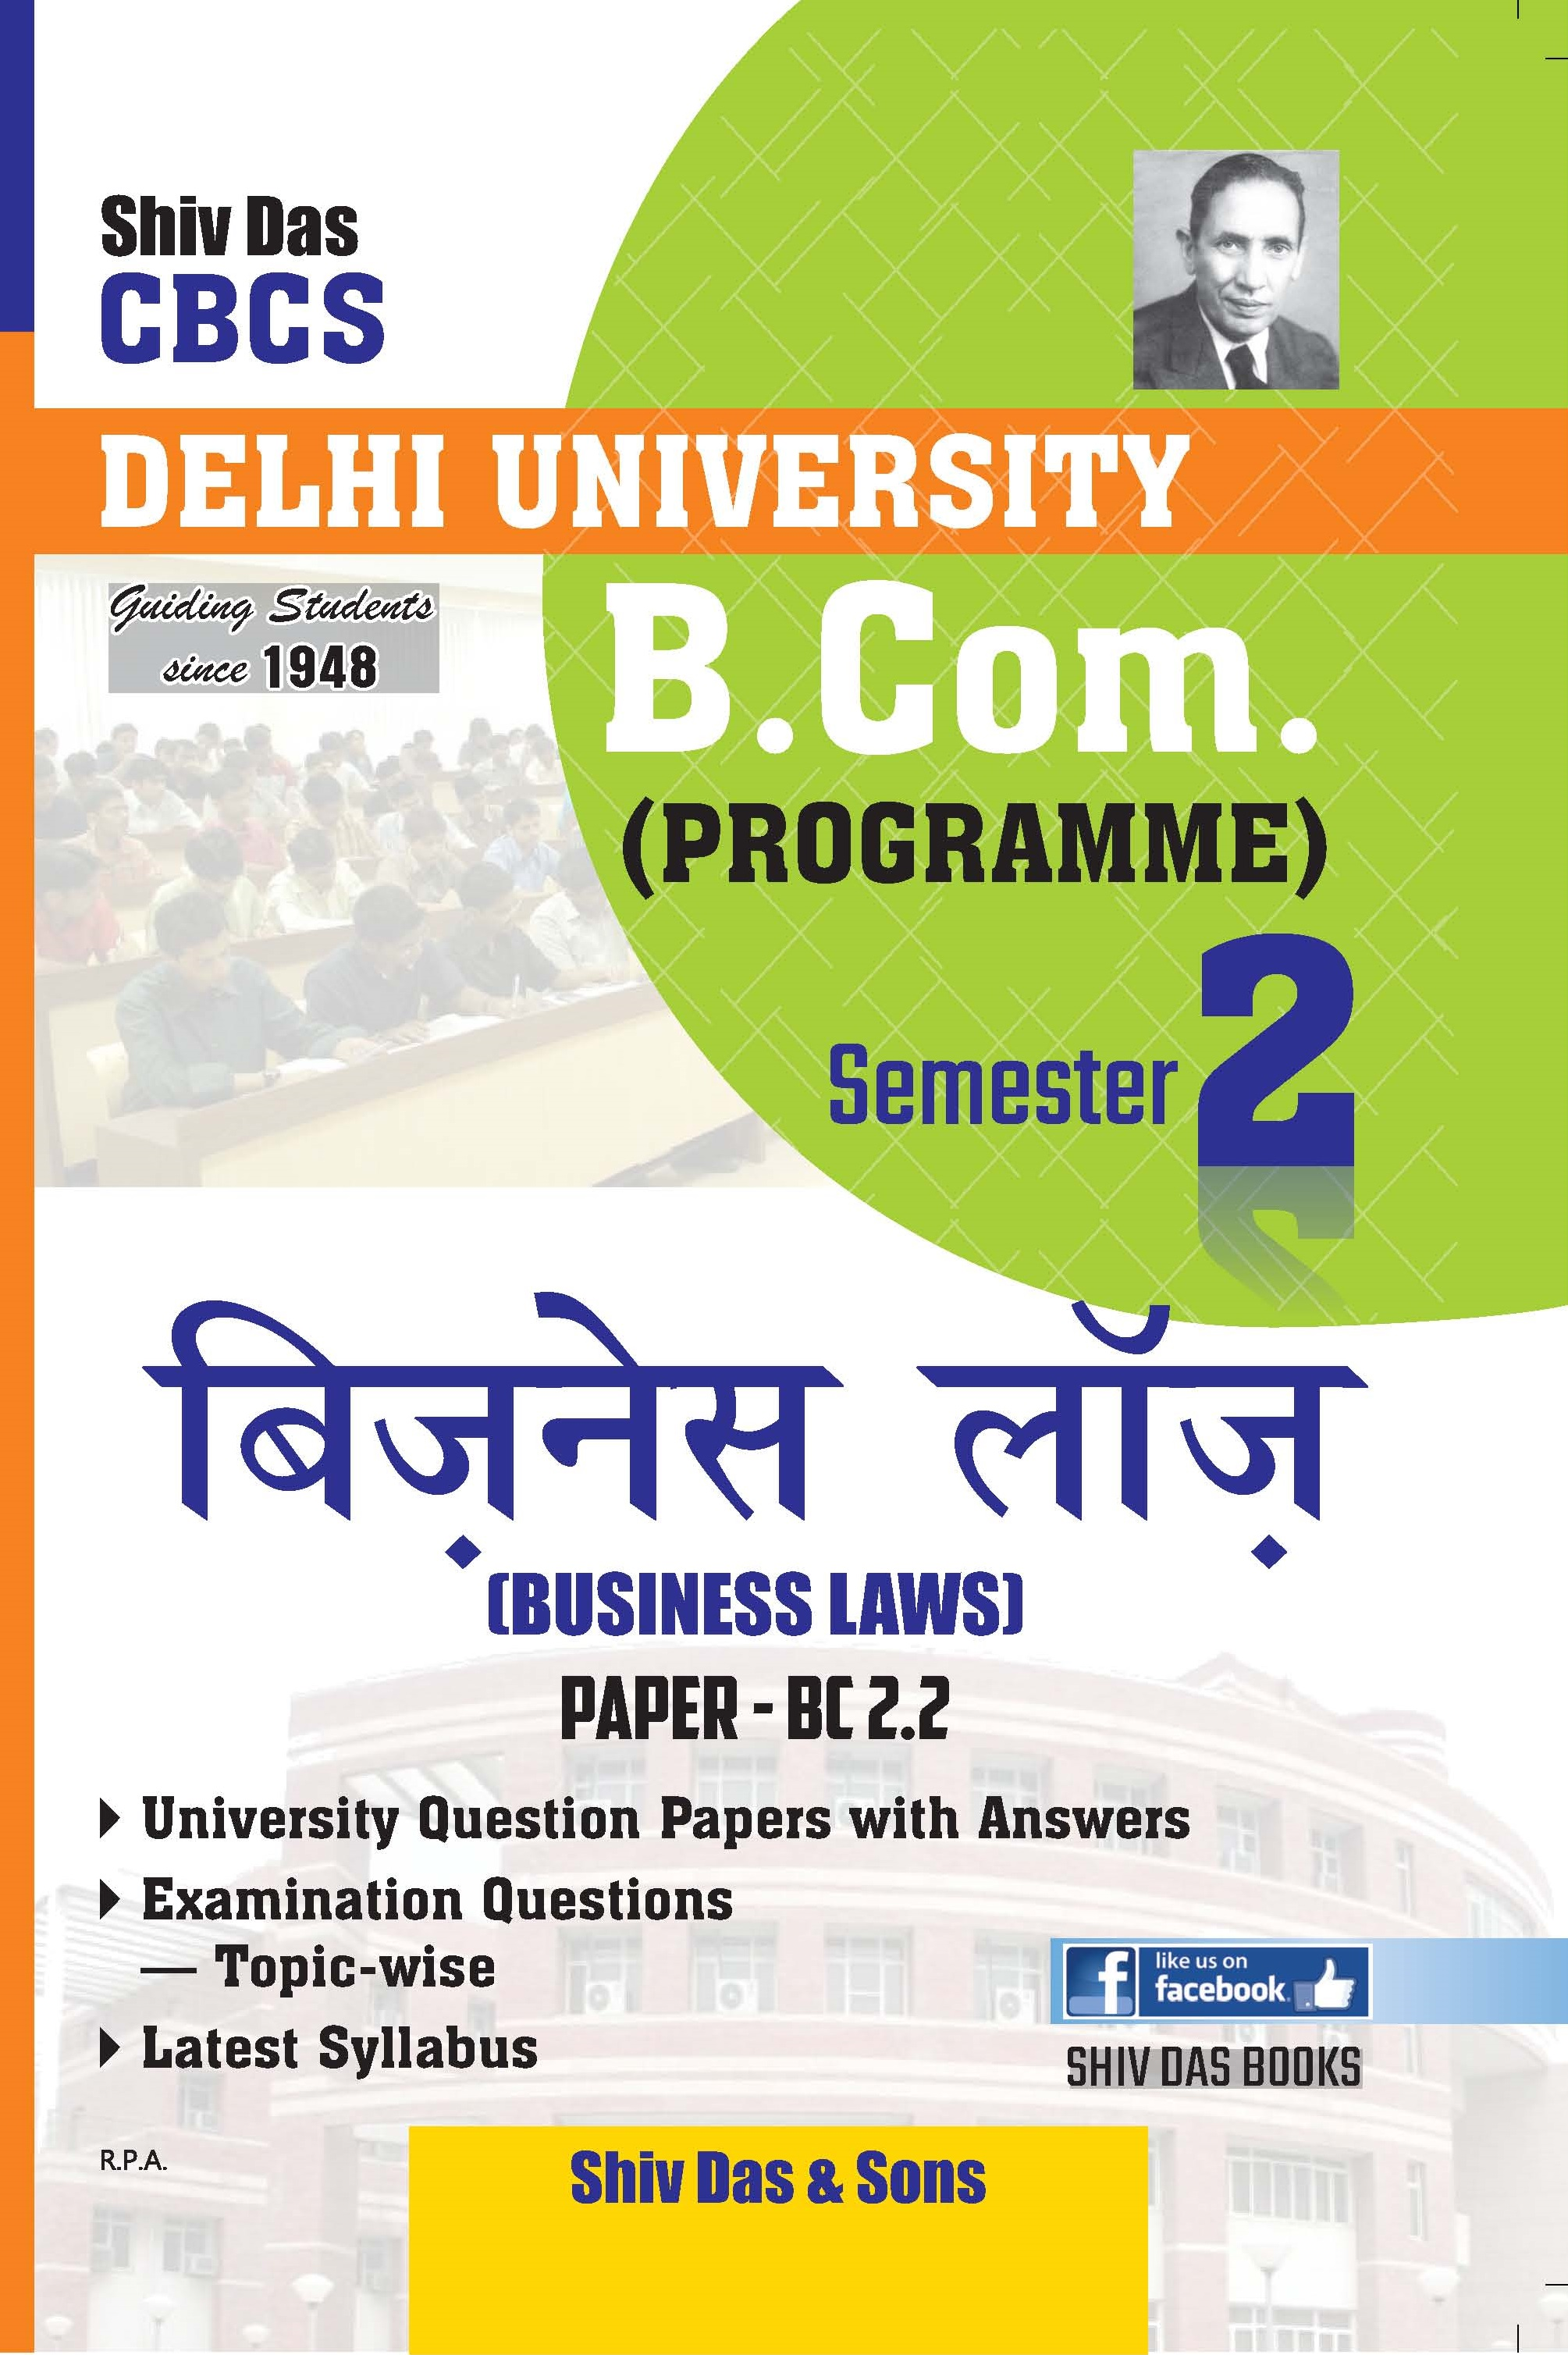 Business Laws (Hindi Med.) for B.Com Prog Semester-2 for Delhi University by Shiv Das